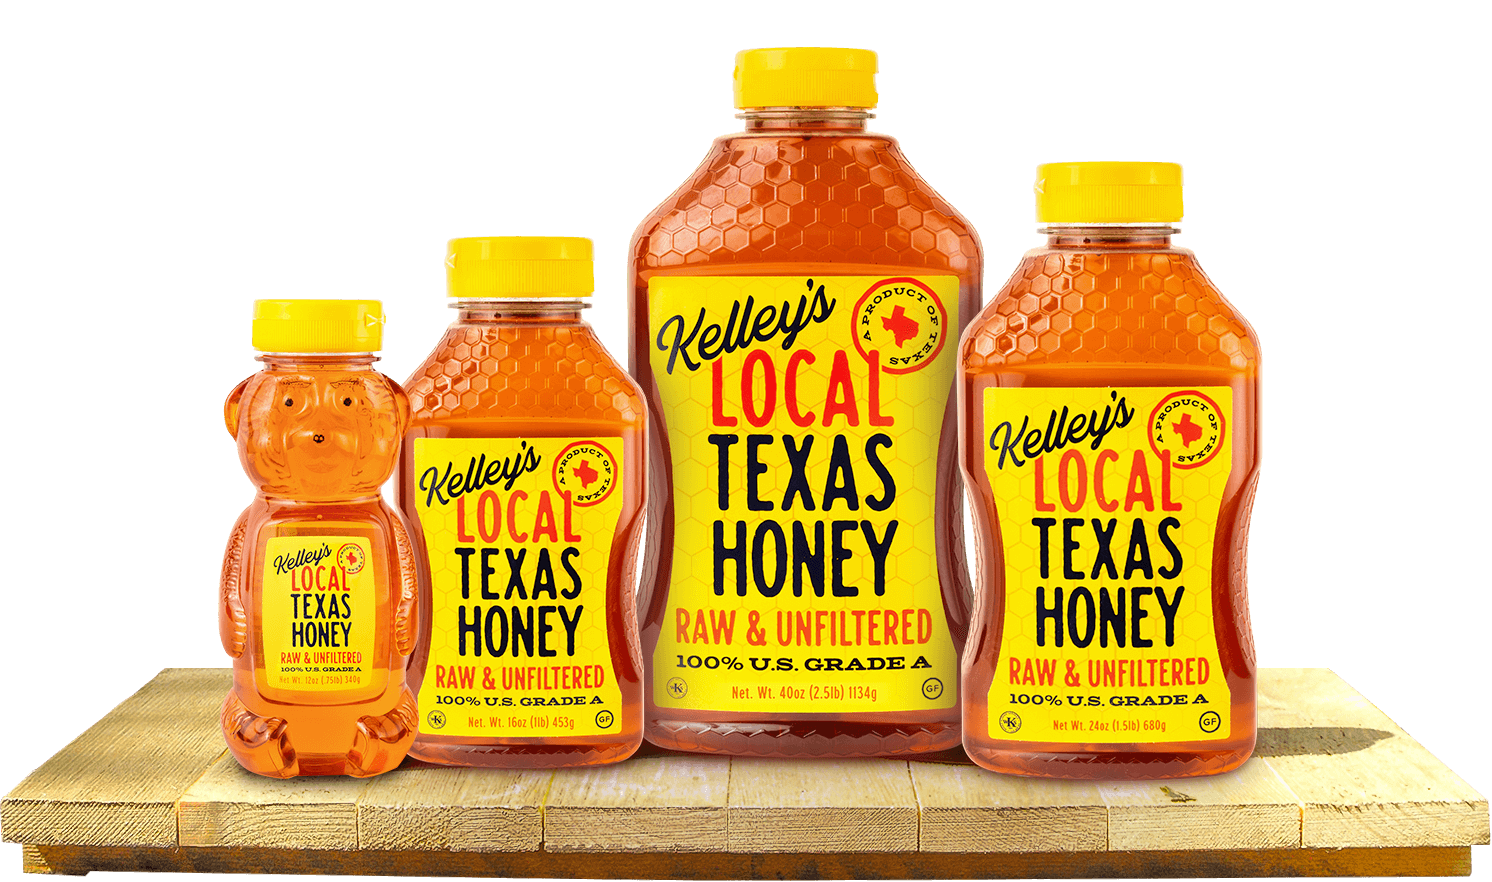 Local Texas Honey Jars